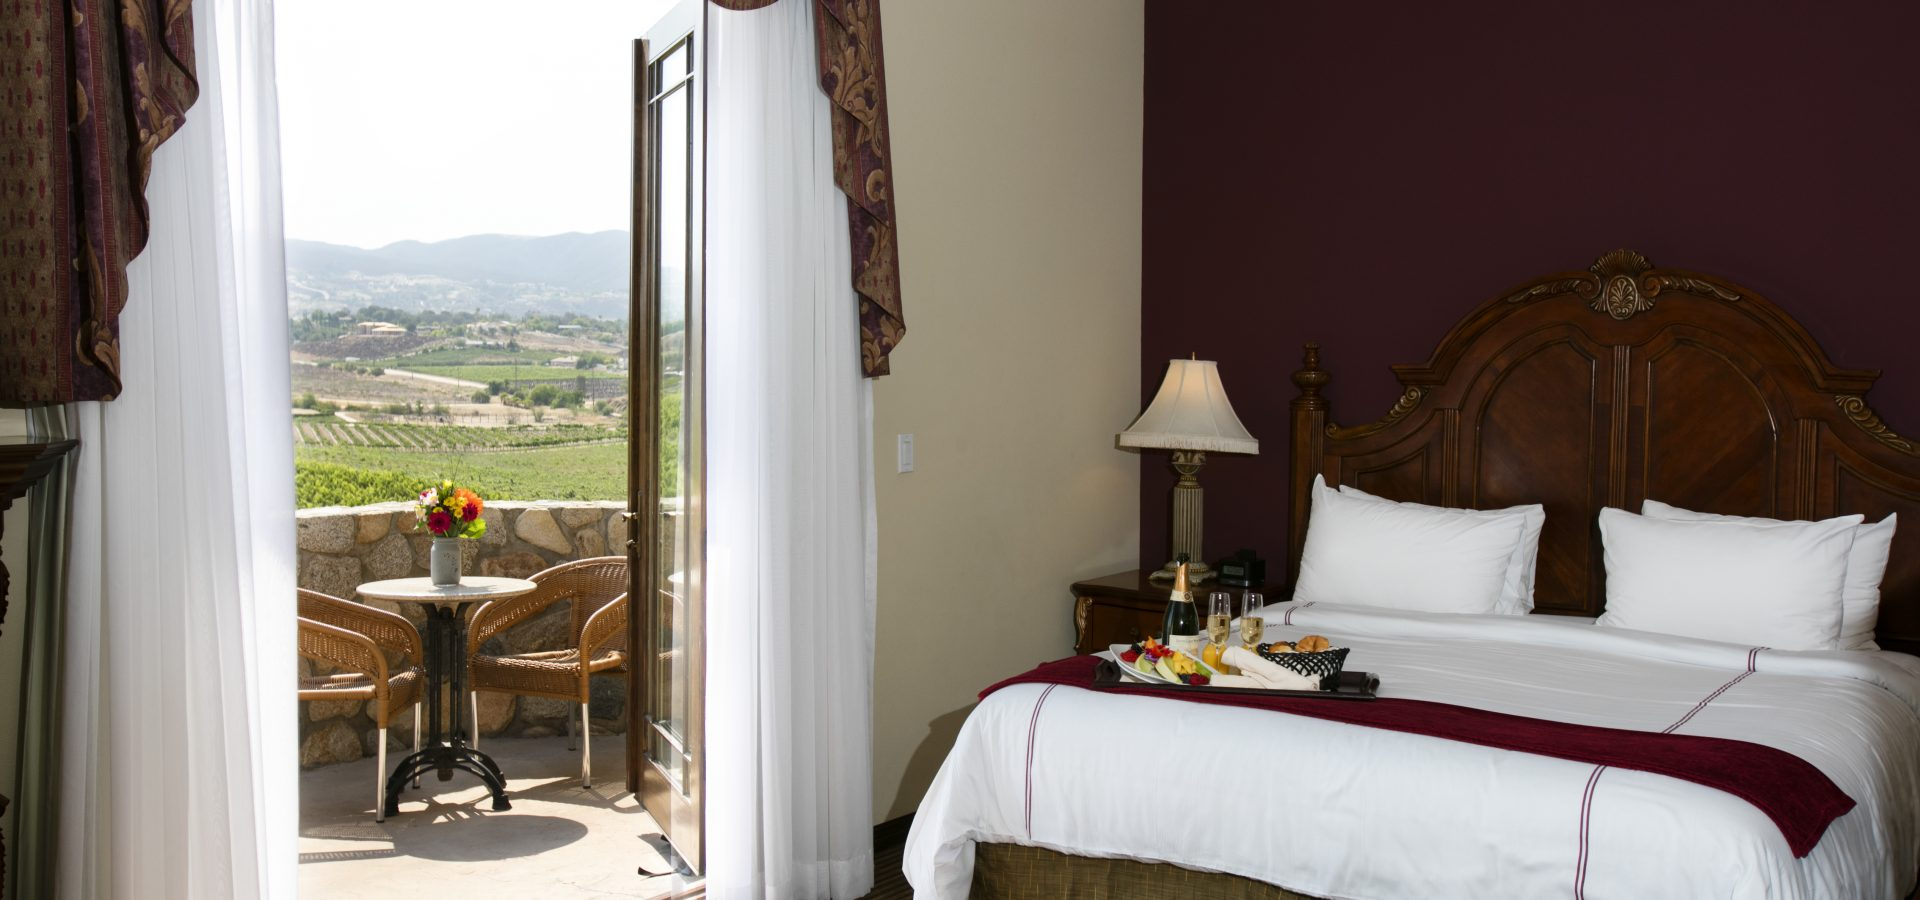 hotel suite with balcony viewing vineyards in Temecula